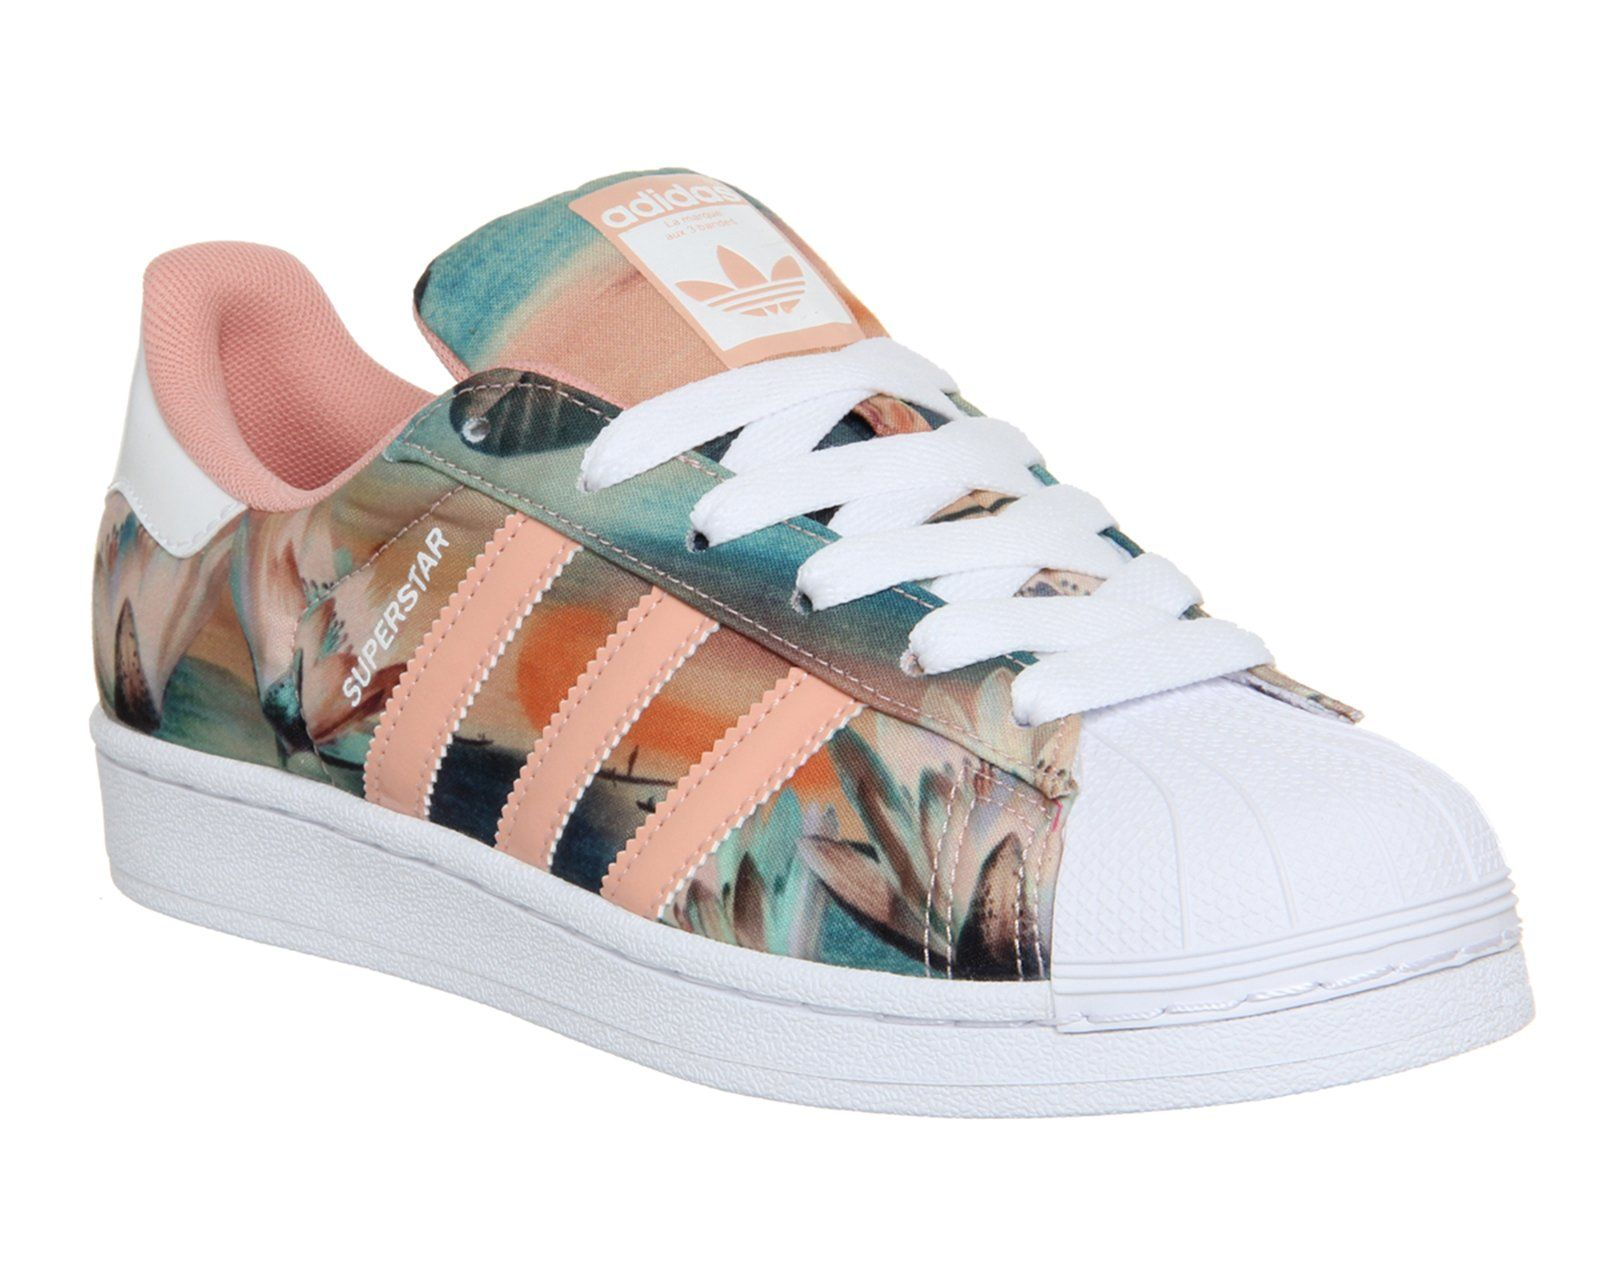 Adidas Superstar 2: Amazon.co.uk: Shoes & Bags | Adidas ...